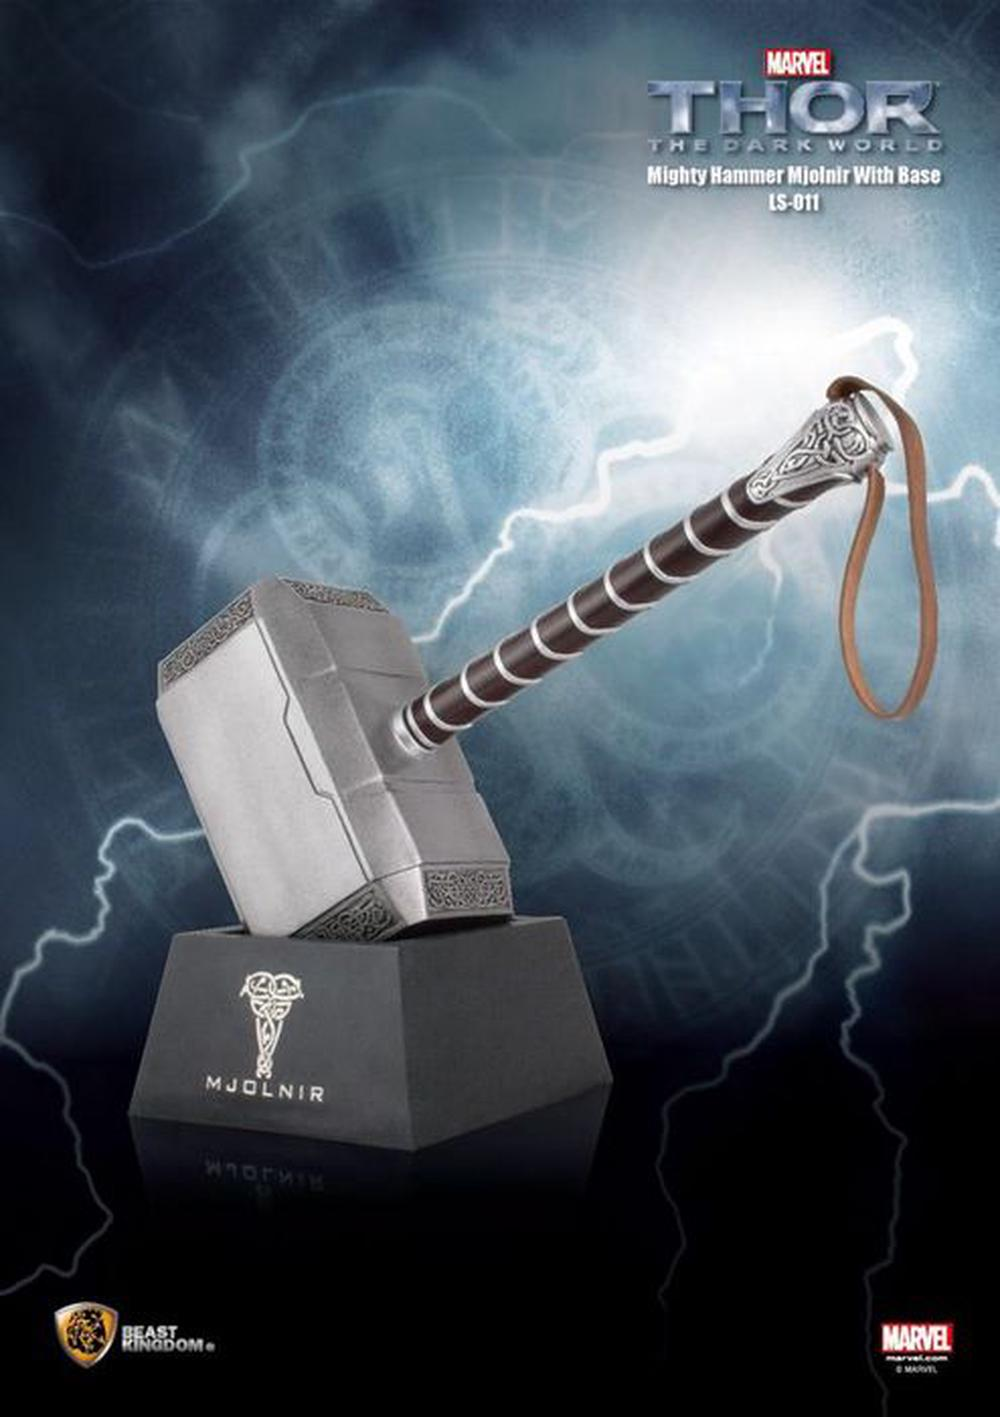 beast kingdom thor 2 the dark world mighty mjolnir hammer with